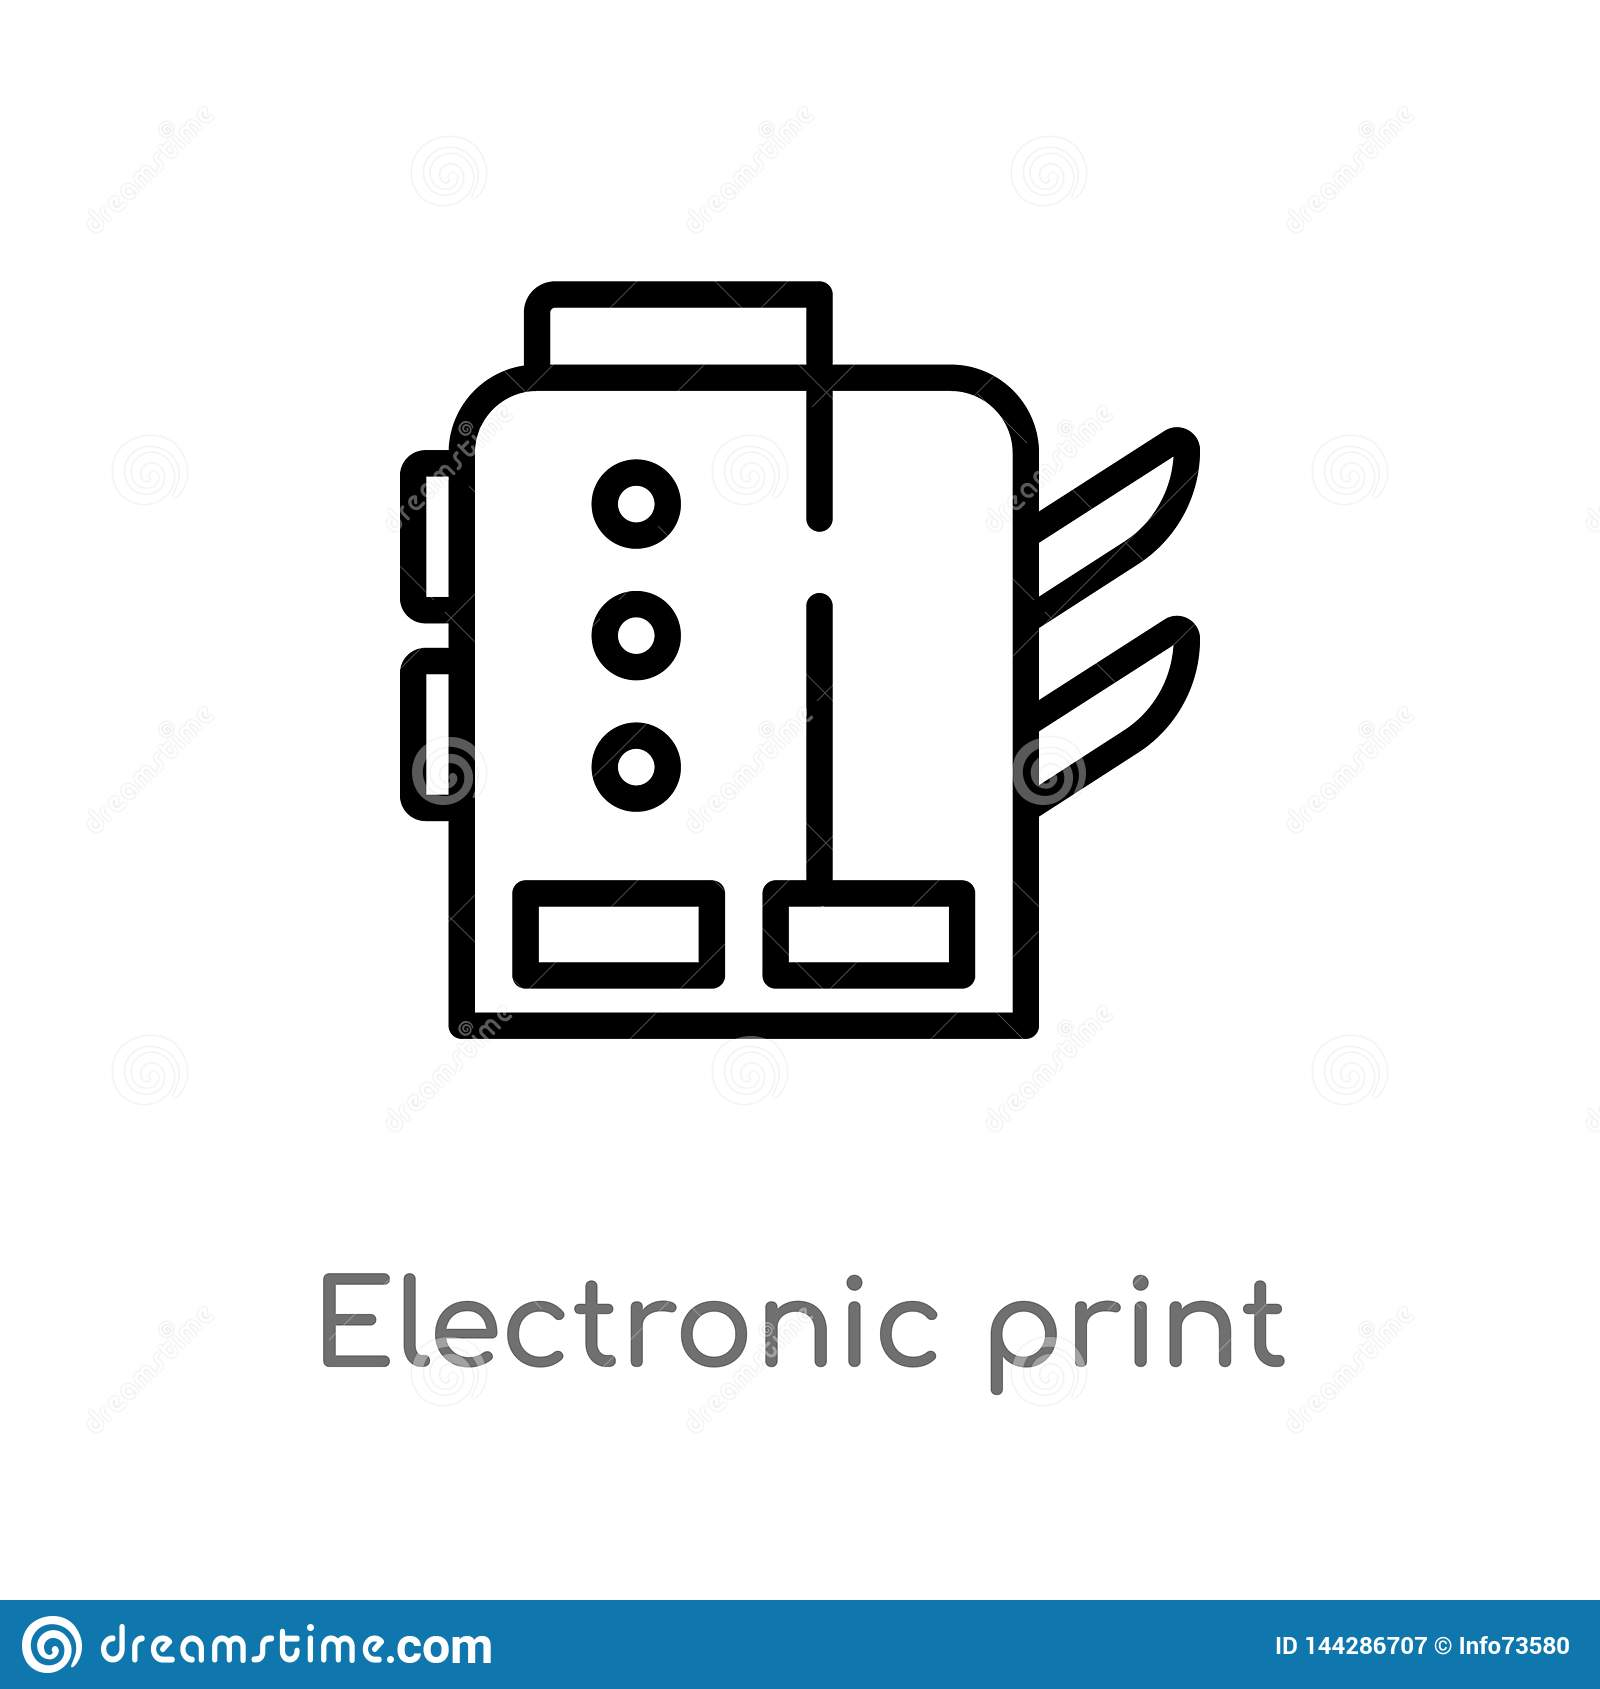 outline electronic print machine vector icon. isolated black simple line element illustration from industry concept. editable